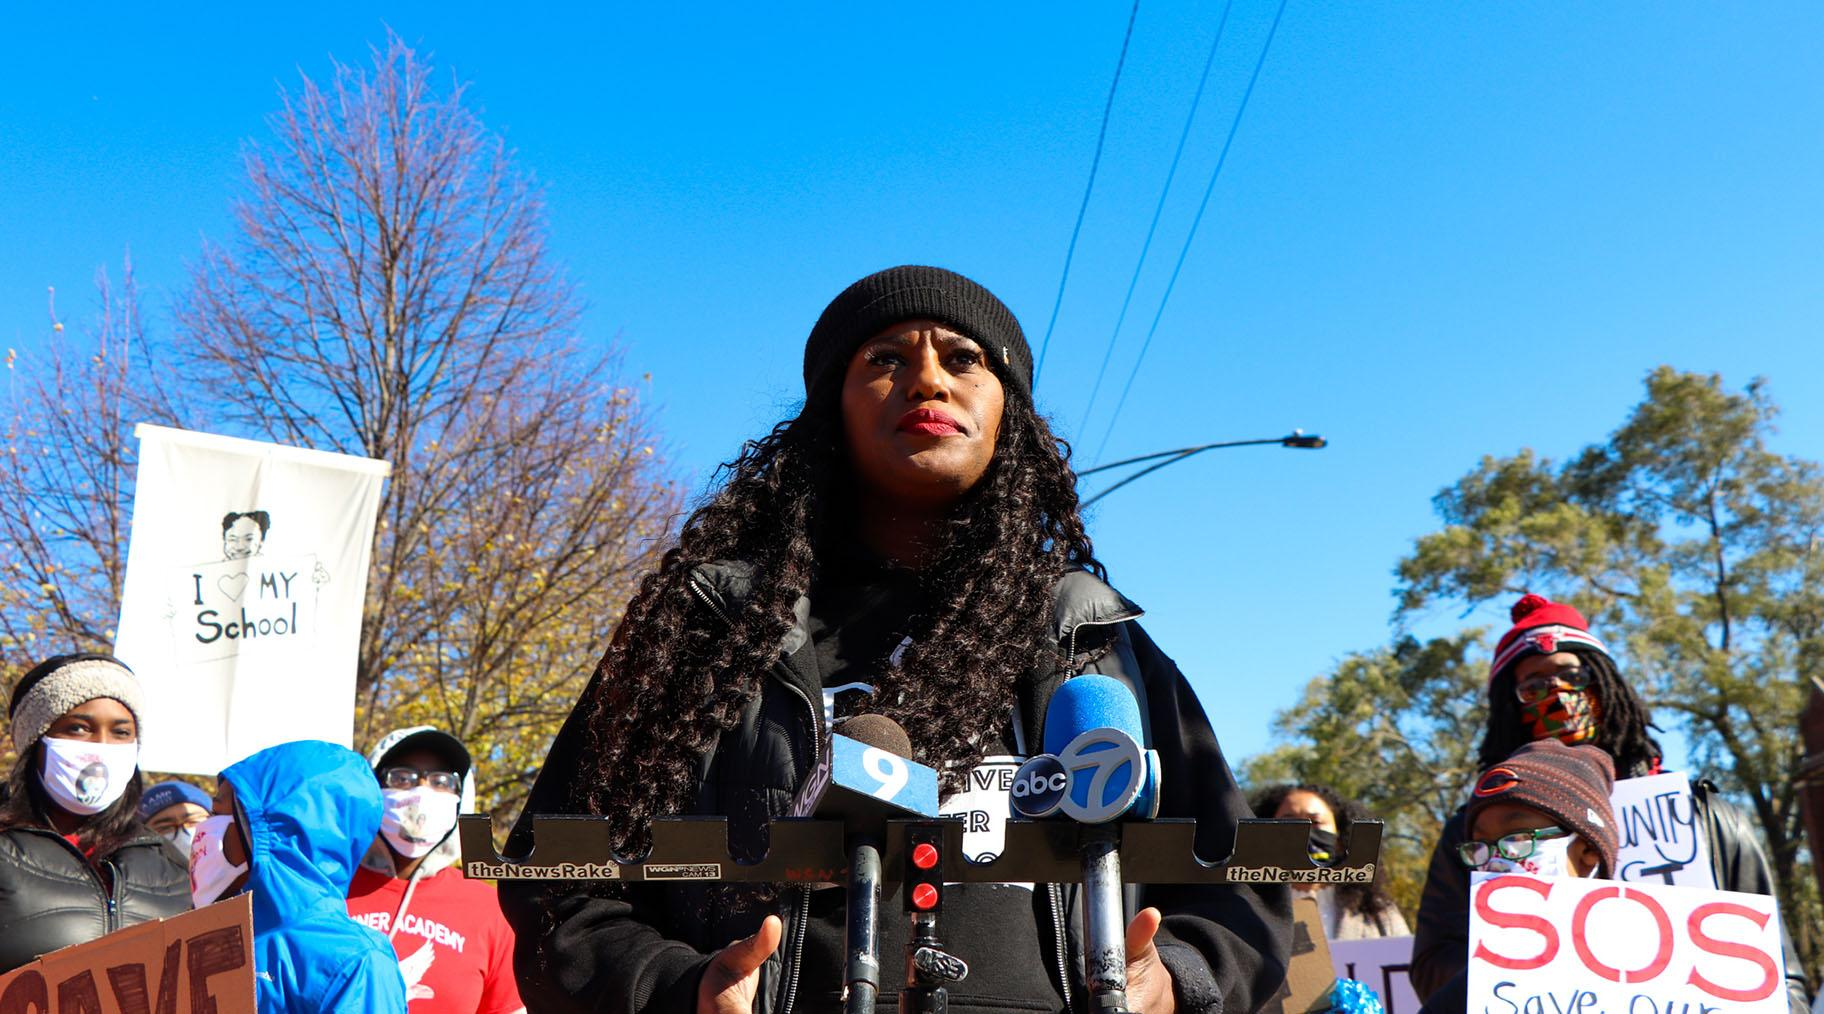 Chicago Teachers Union Vice President Stacy Davis Gates at the rally Saturday, Oct. 31, 2020. (Grace Del Vecchio / WTTW News)